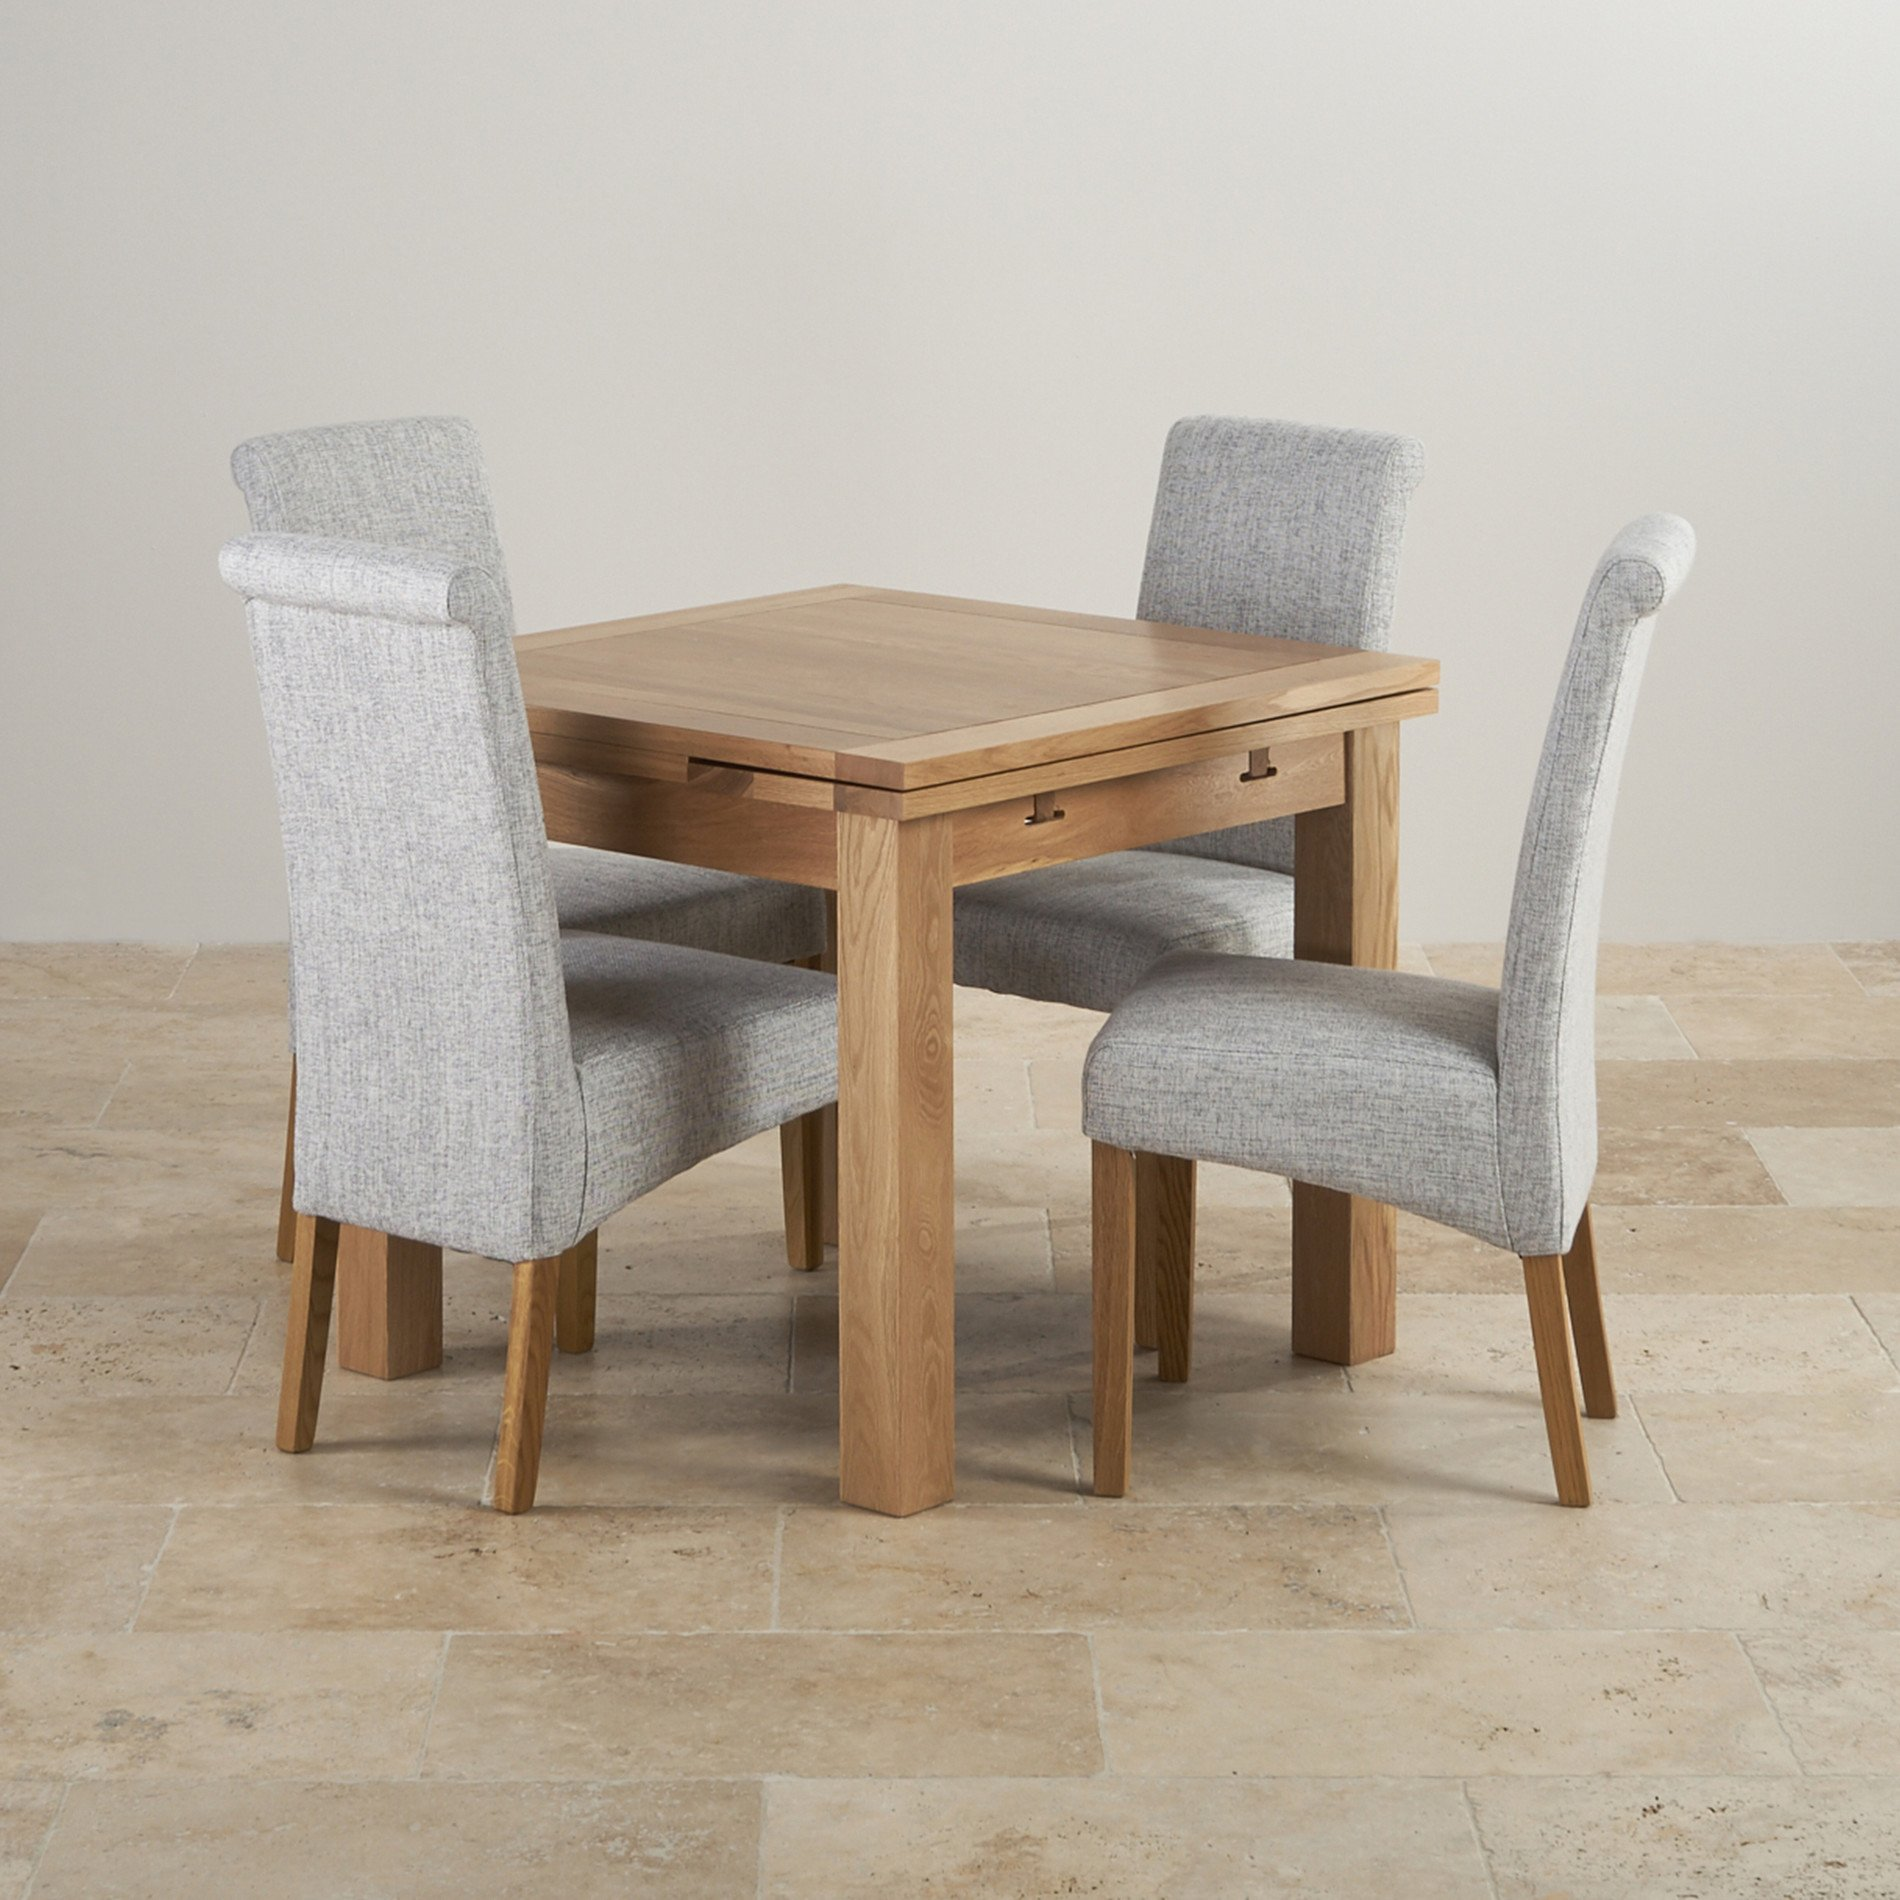 Dorset oak 3ft dining table with 4 grey fabric chairs for Dining room table chairs